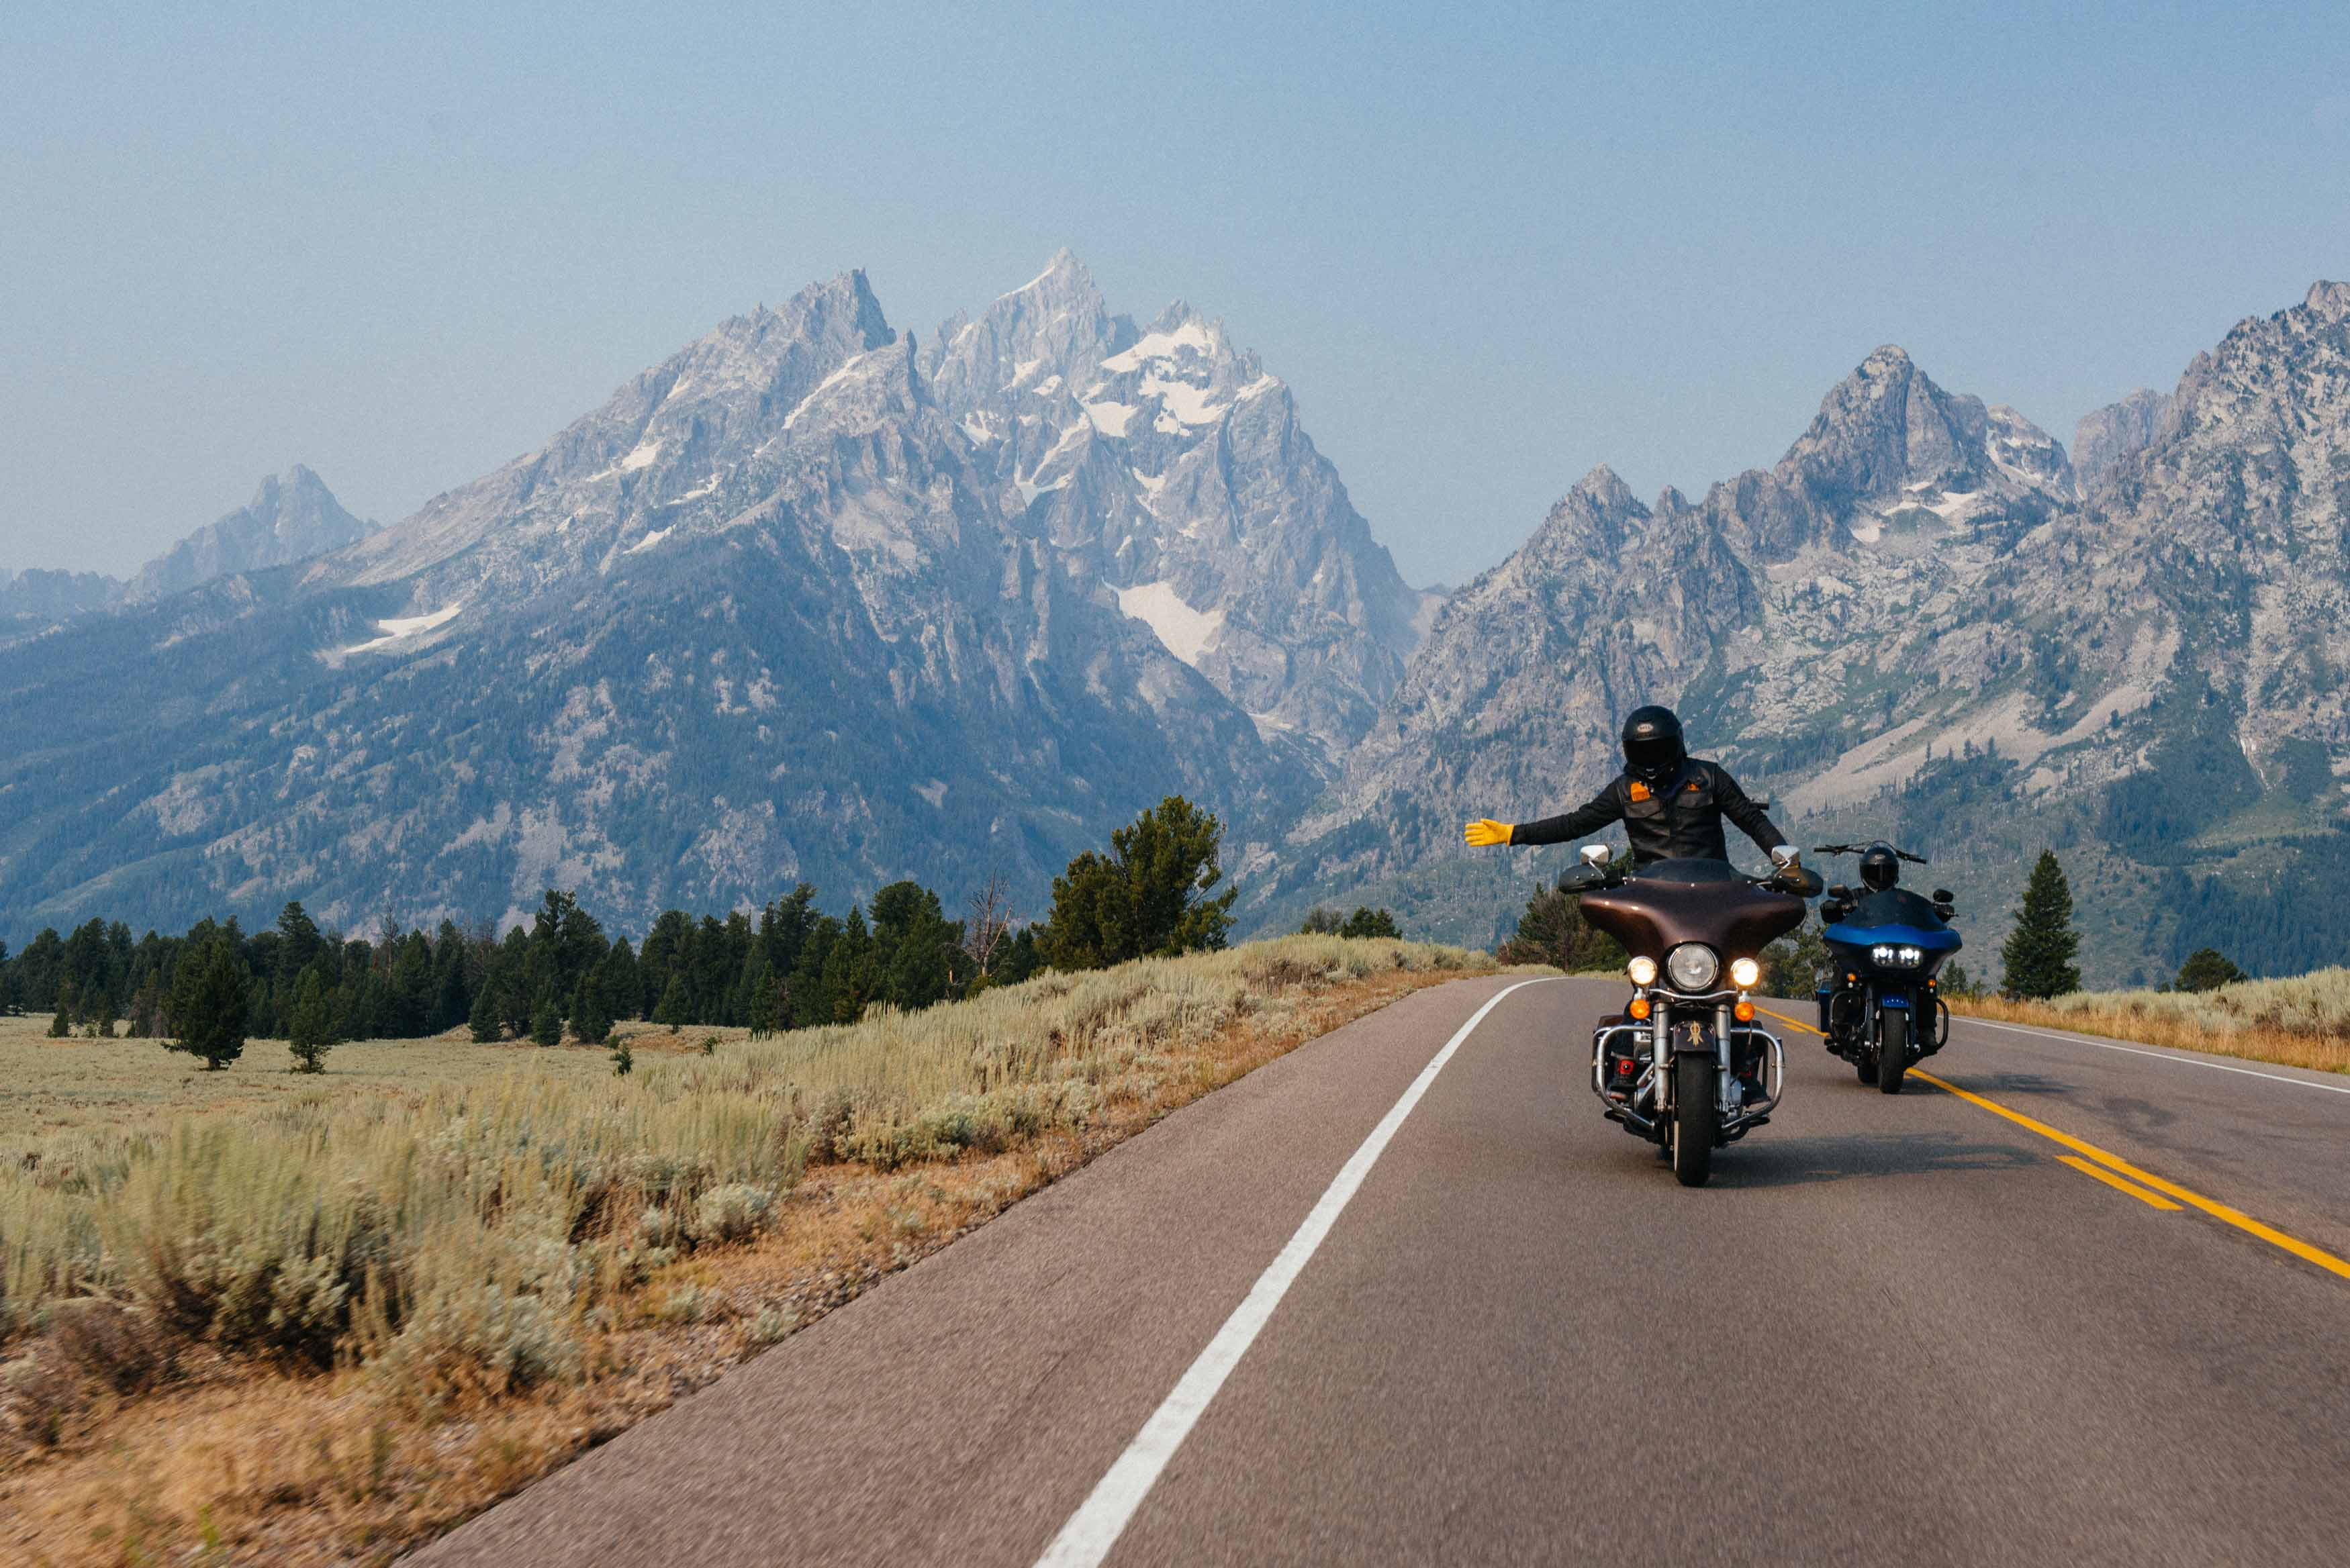 Bikes on Bikes: Roadtripping to Sturgis and Crankworx - The